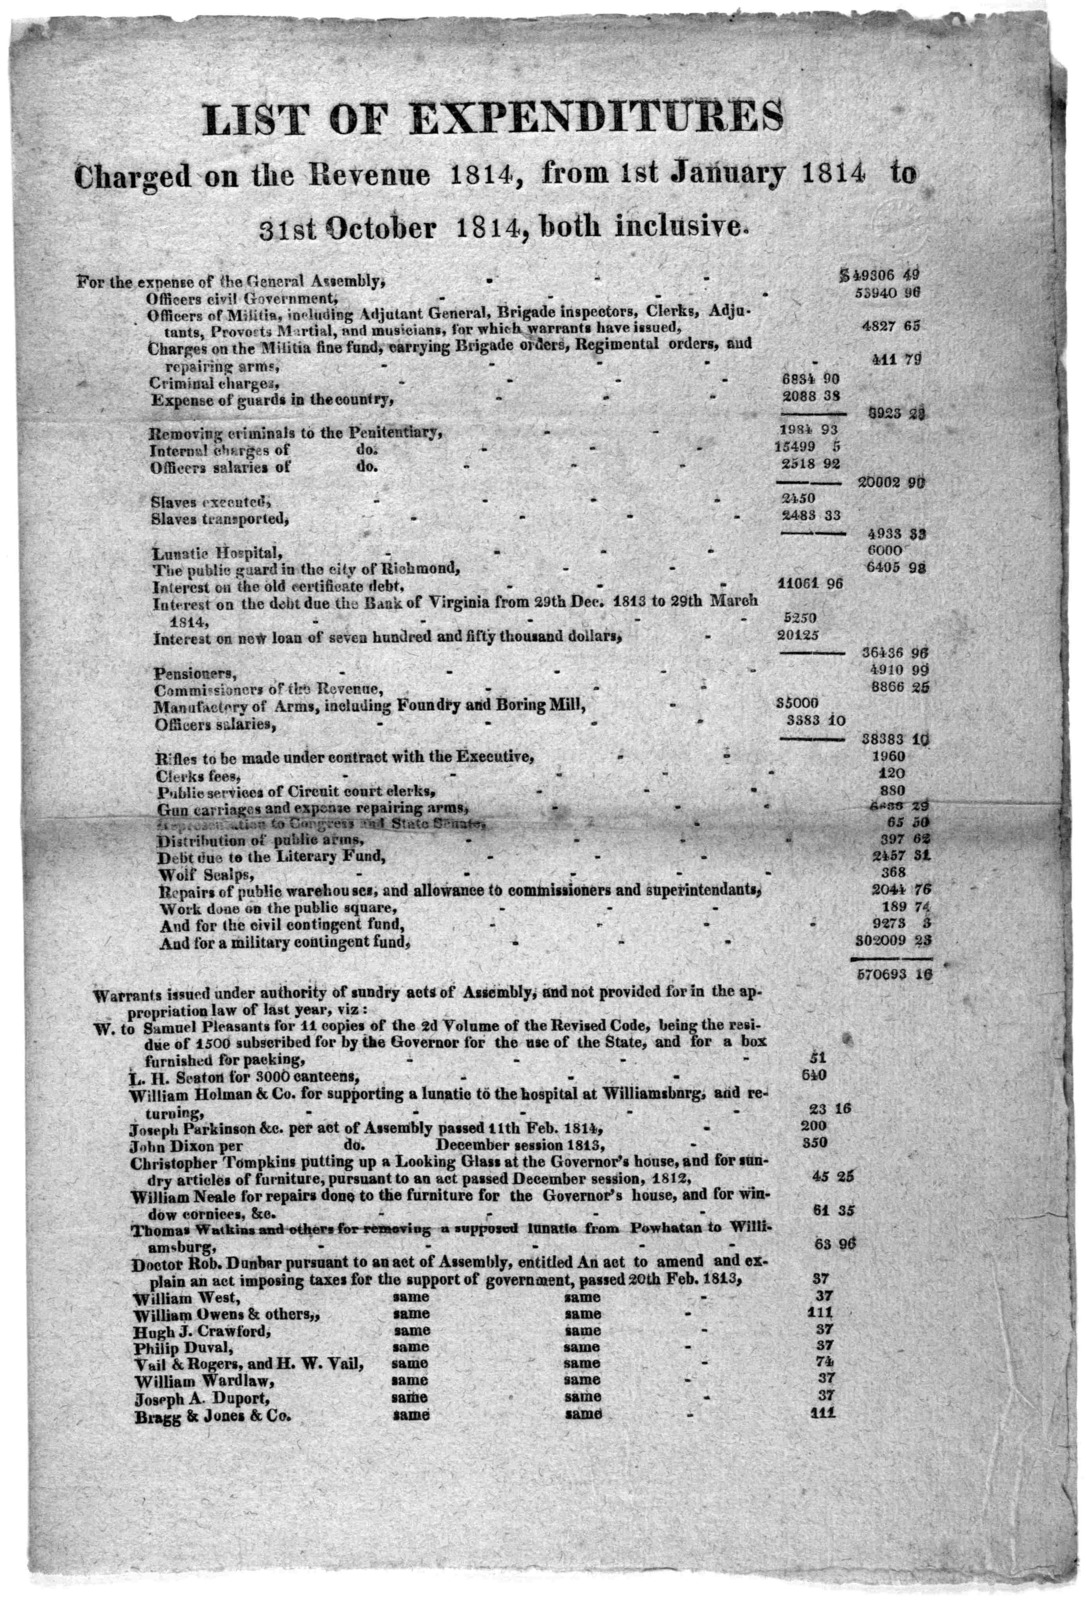 List of expenditures charged on the revenue 1814, from 1st January 1814 to 31st October, 1814, both inclusive. [Richmond] Auditor's office, 14th November 1814.